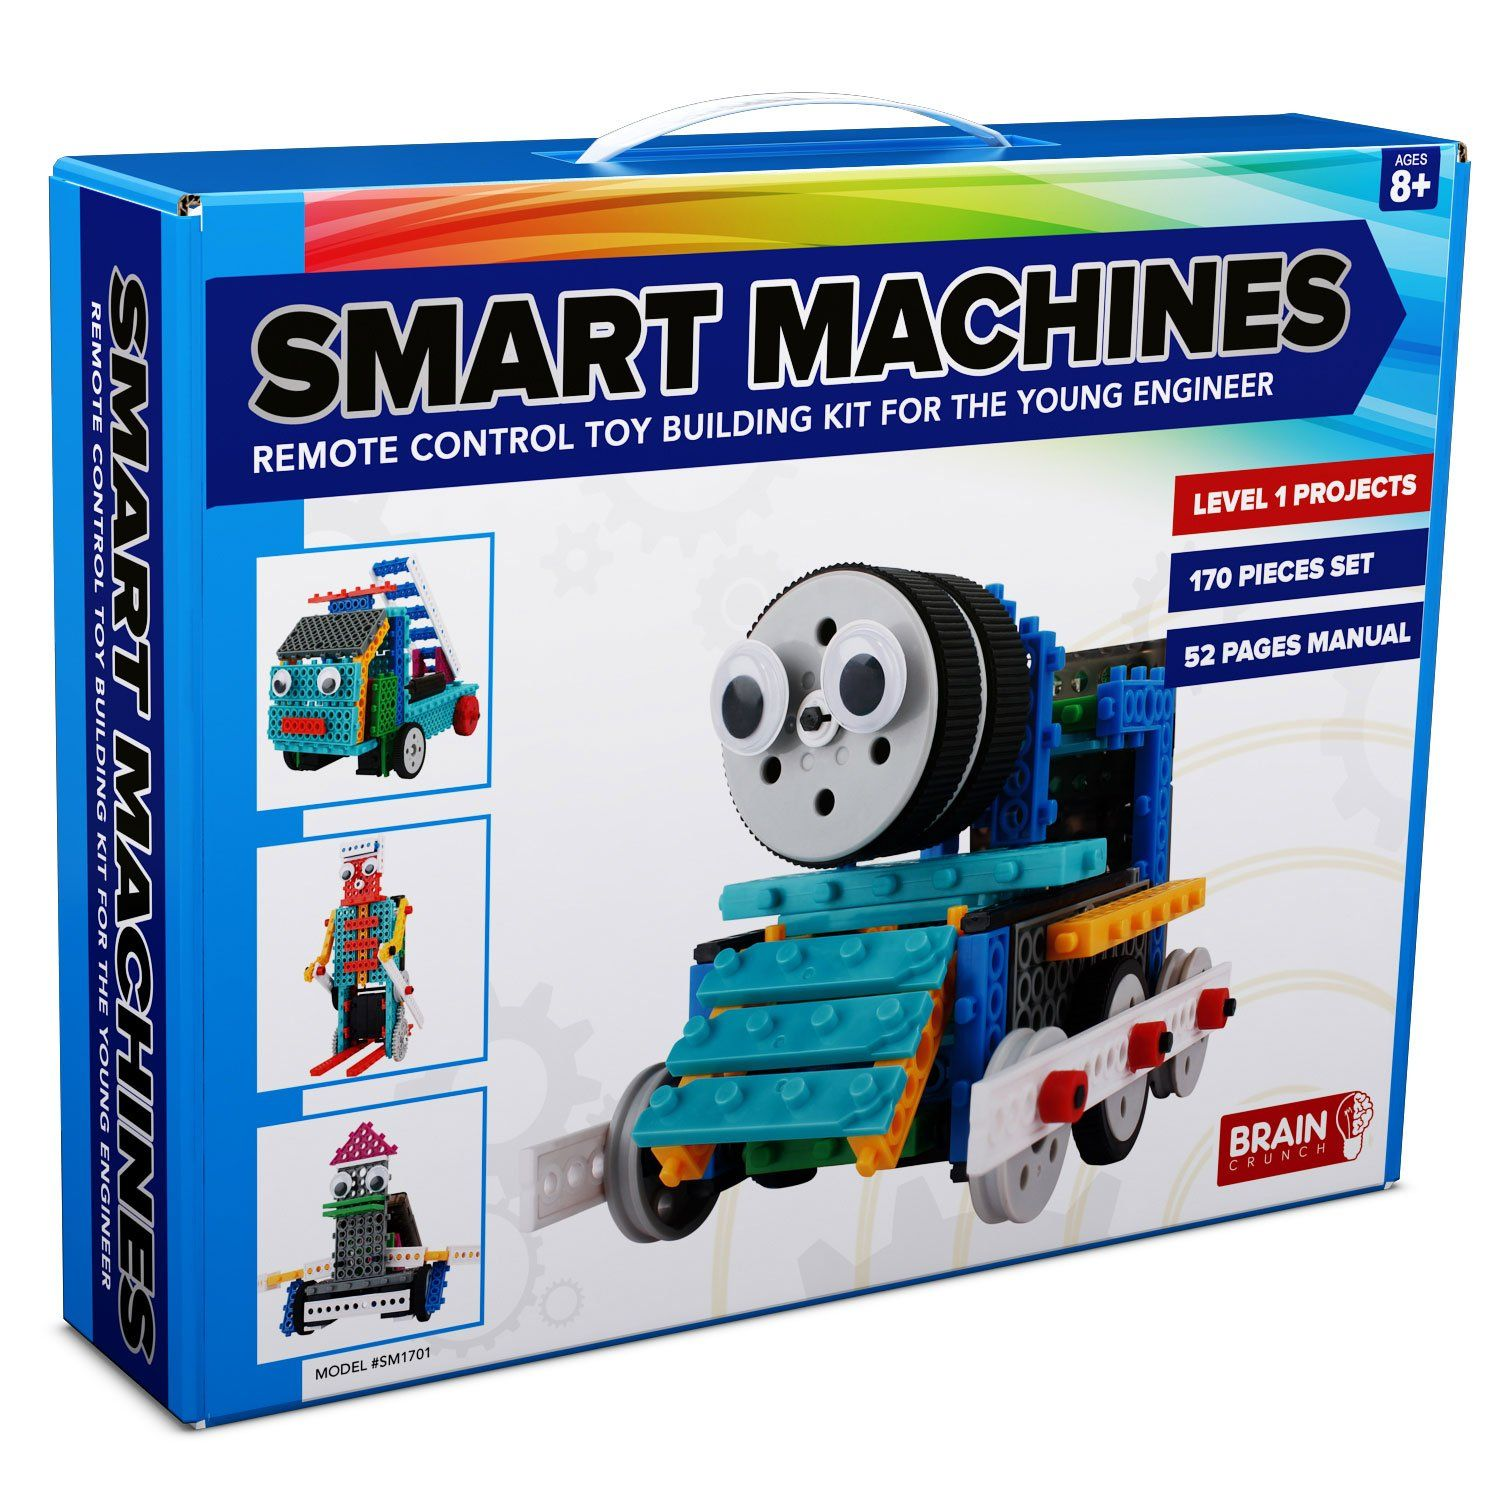 4 in 1 Robot Kit for Kids and Adults Make and Control Your Own